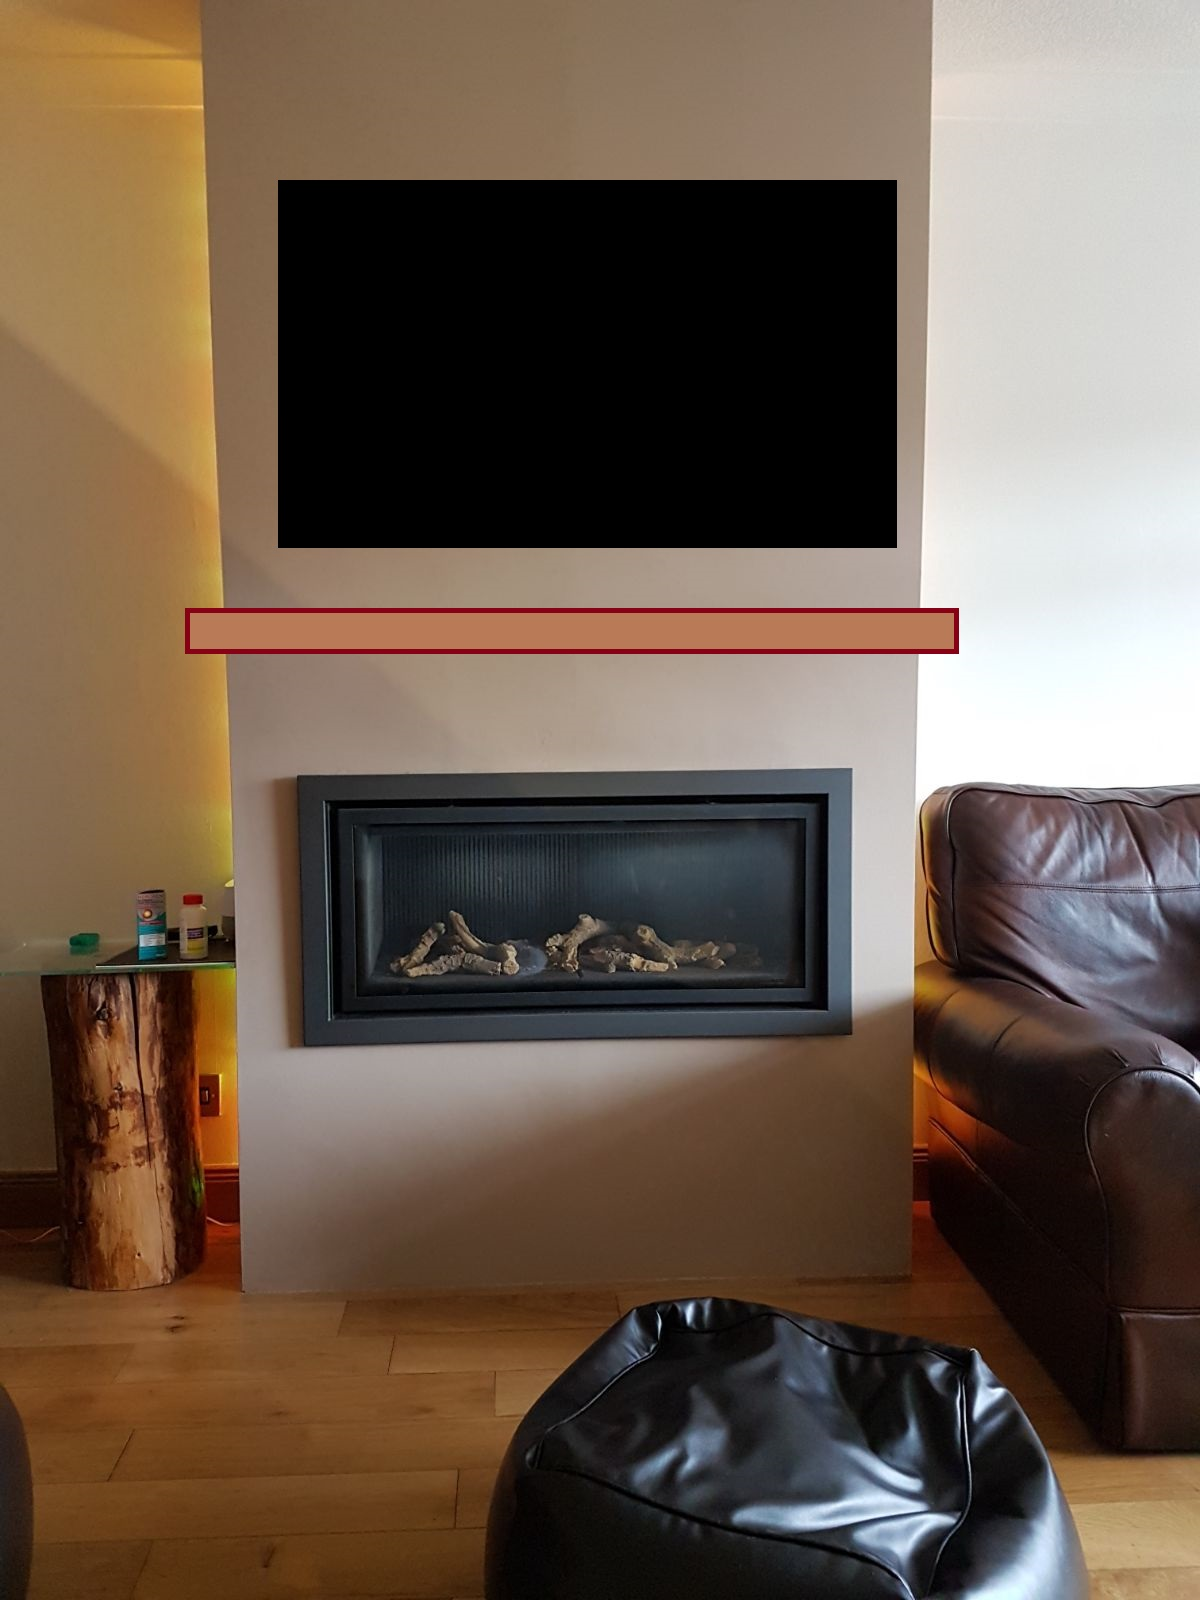 Will There Be A Problem Mounting A Tv Above A Gas Fire On